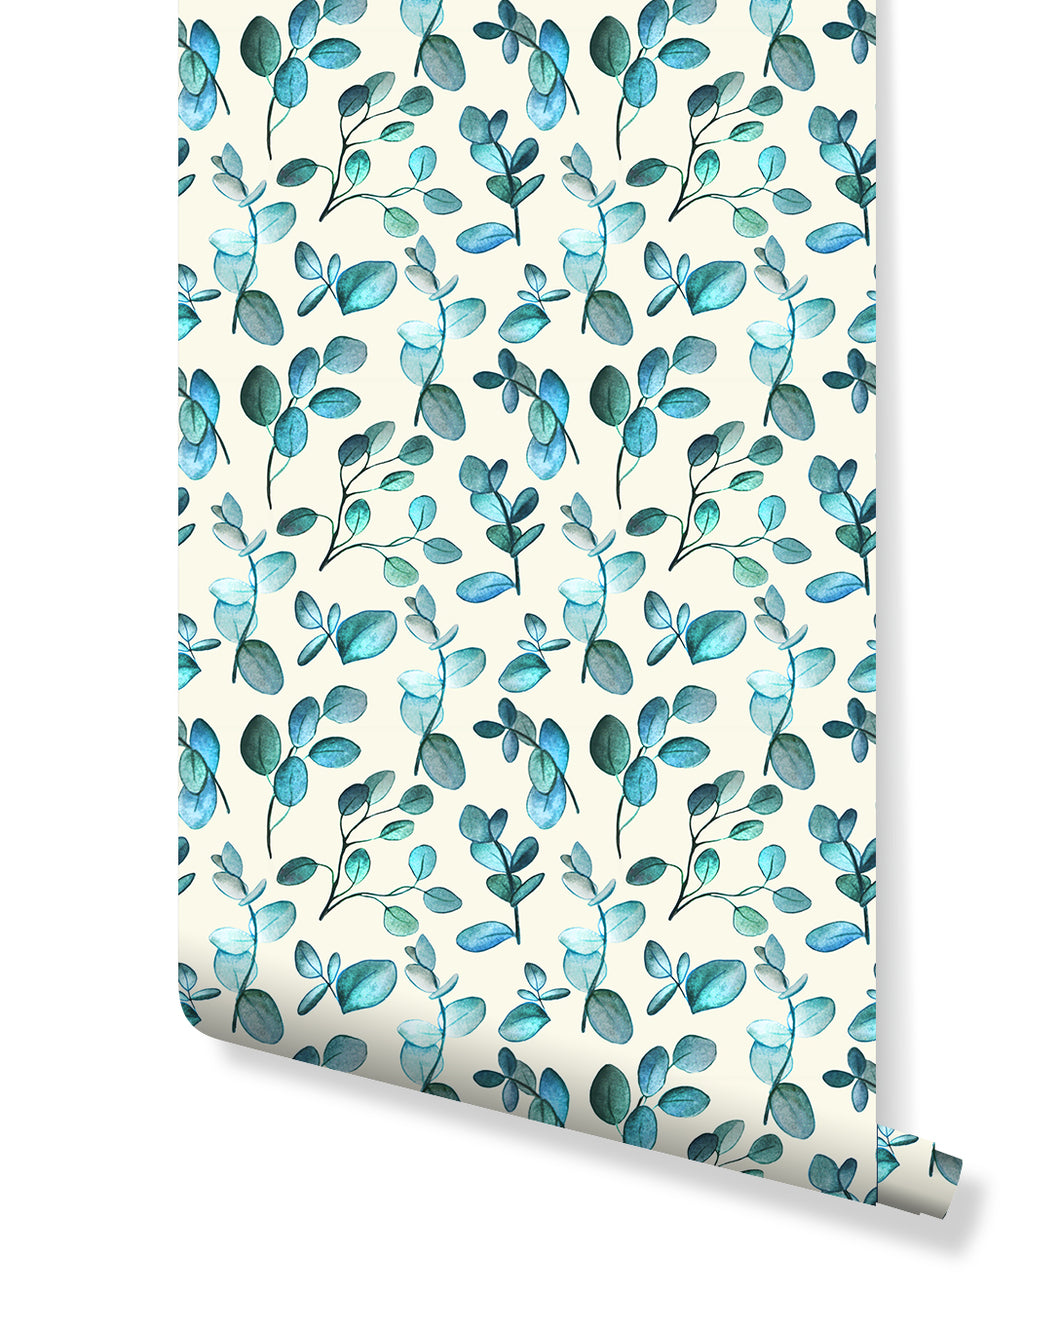 Self Adhesive Aqua Twigs Removable Wallpaper CC213